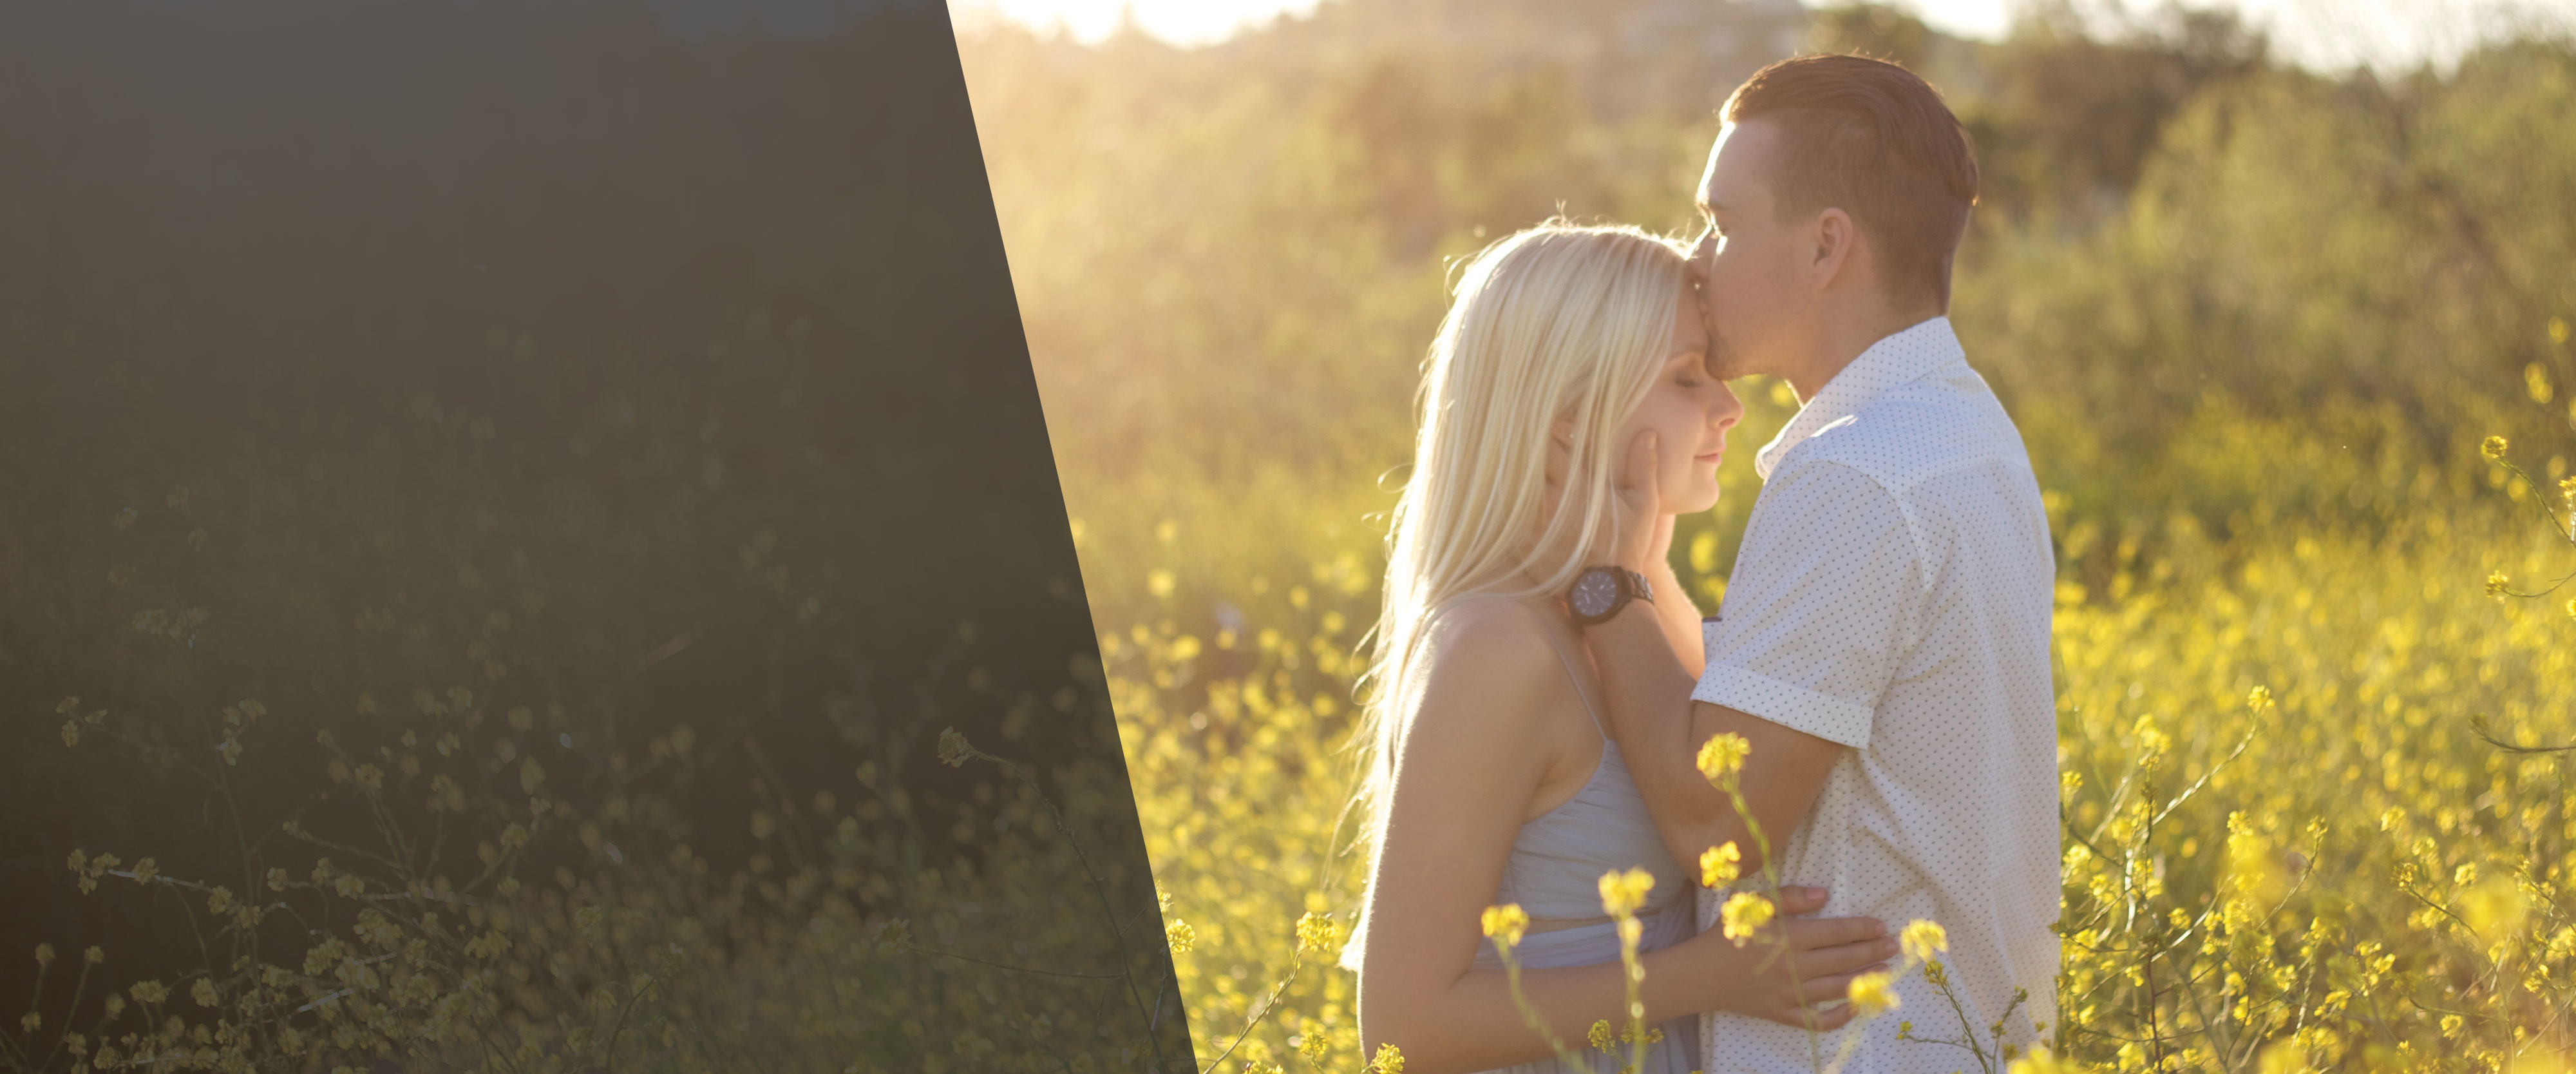 Sweethearts + Couples Sessions